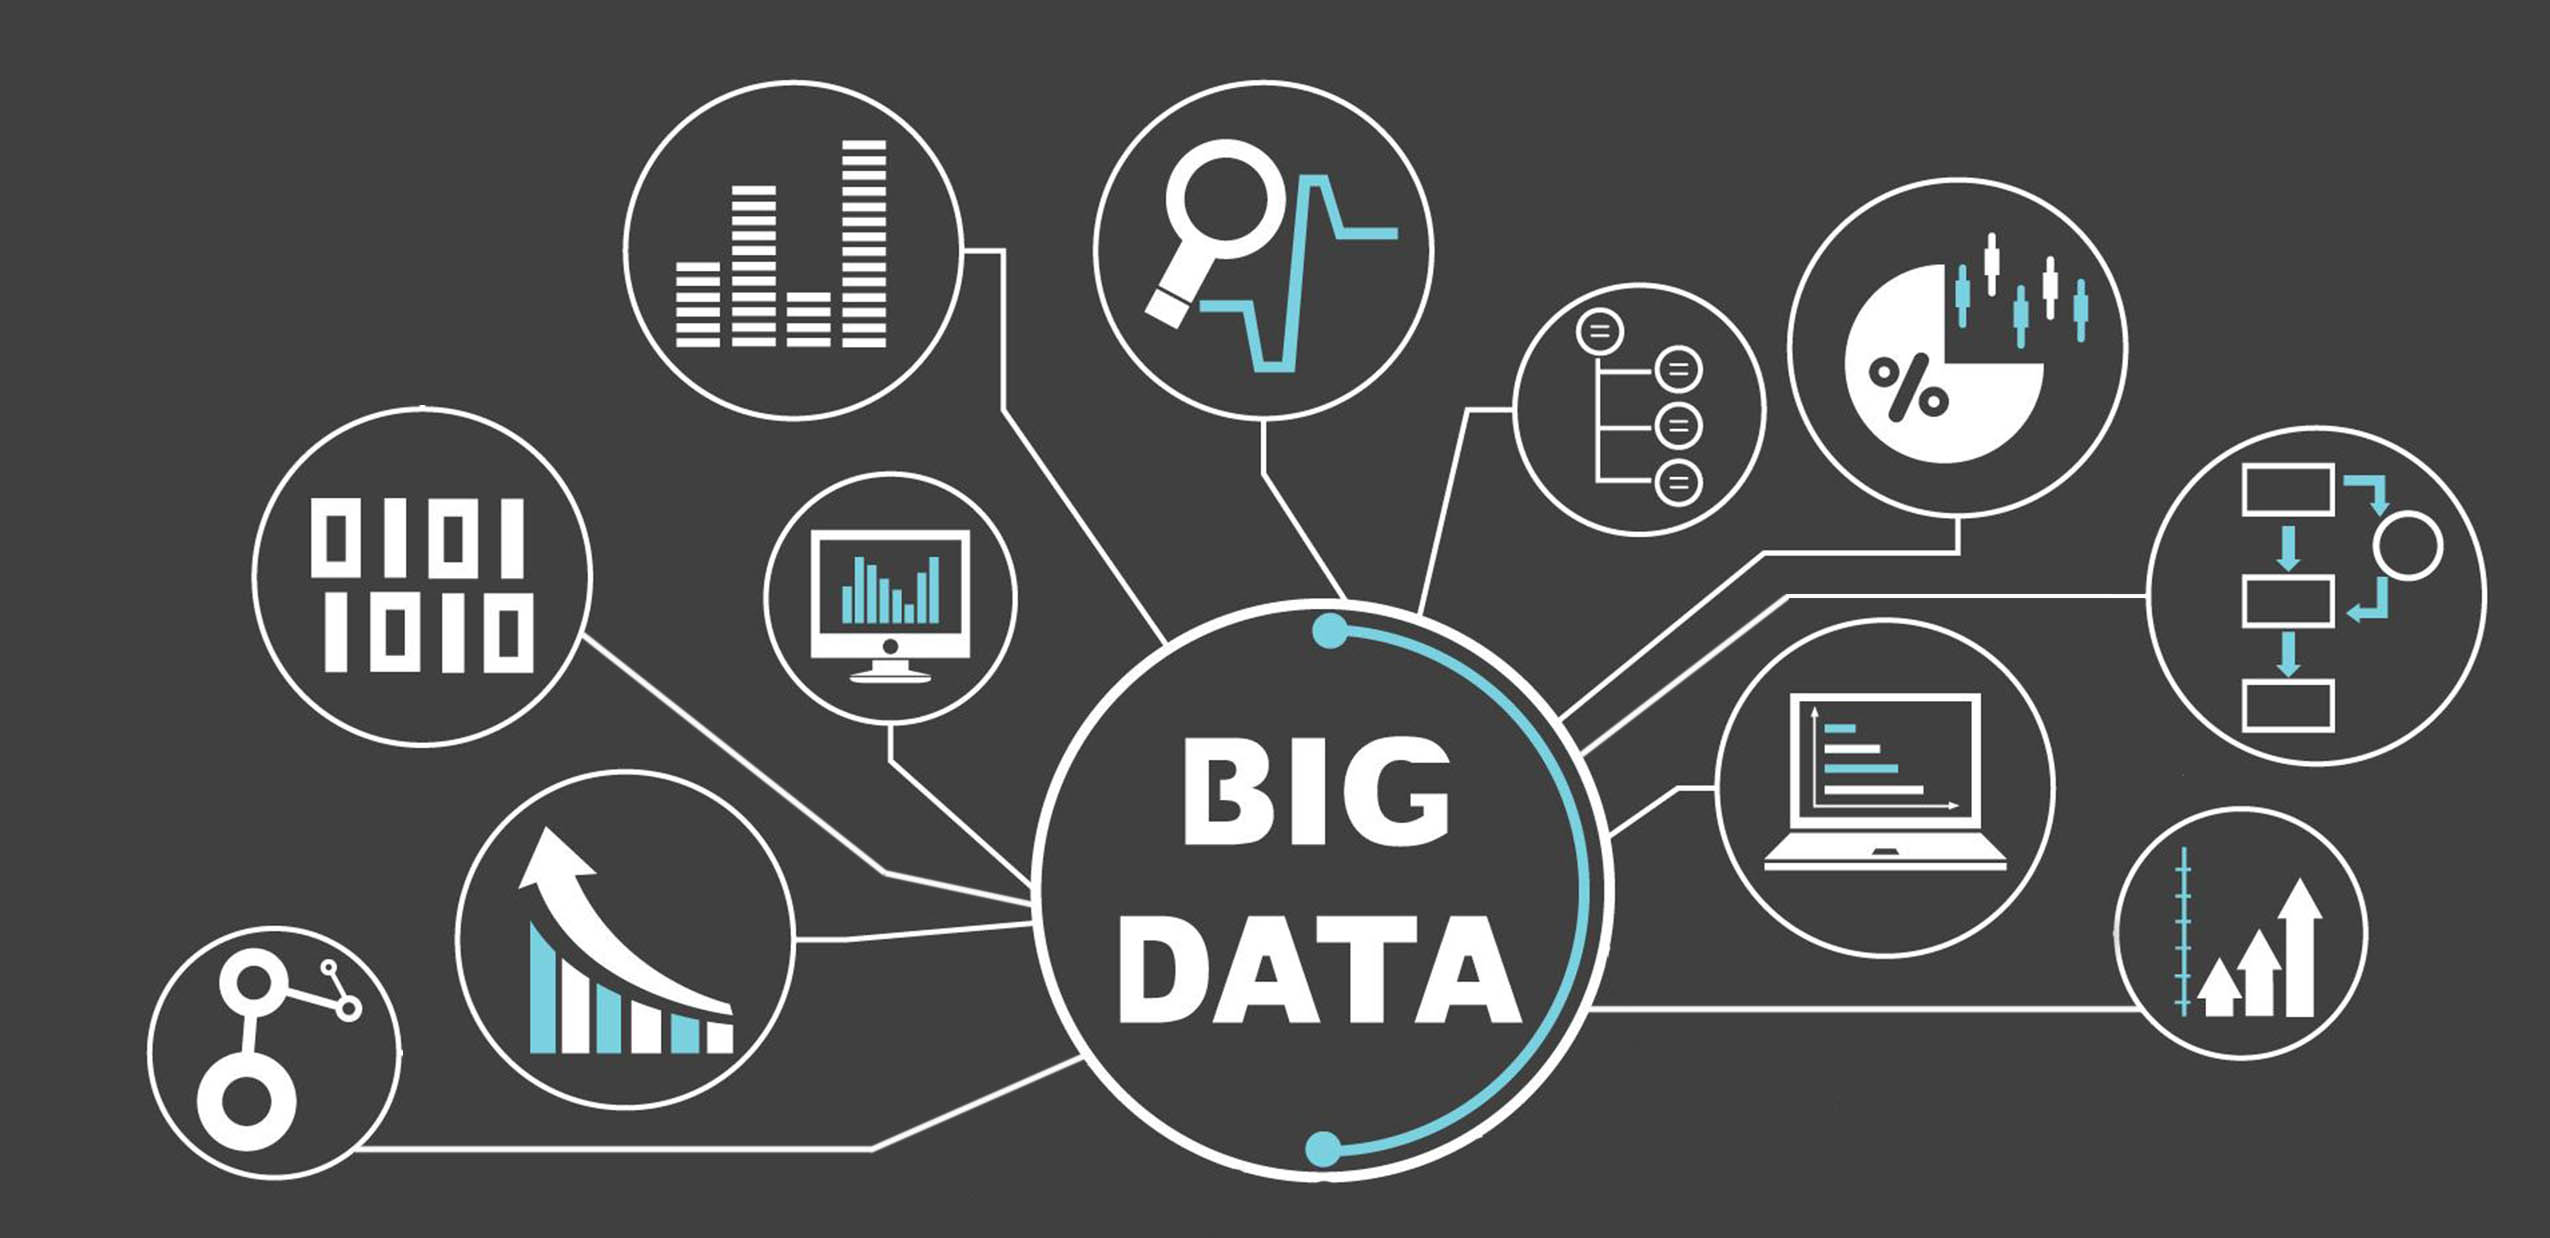 Big Data: Consulting Services and Companies Providing Big Data Services